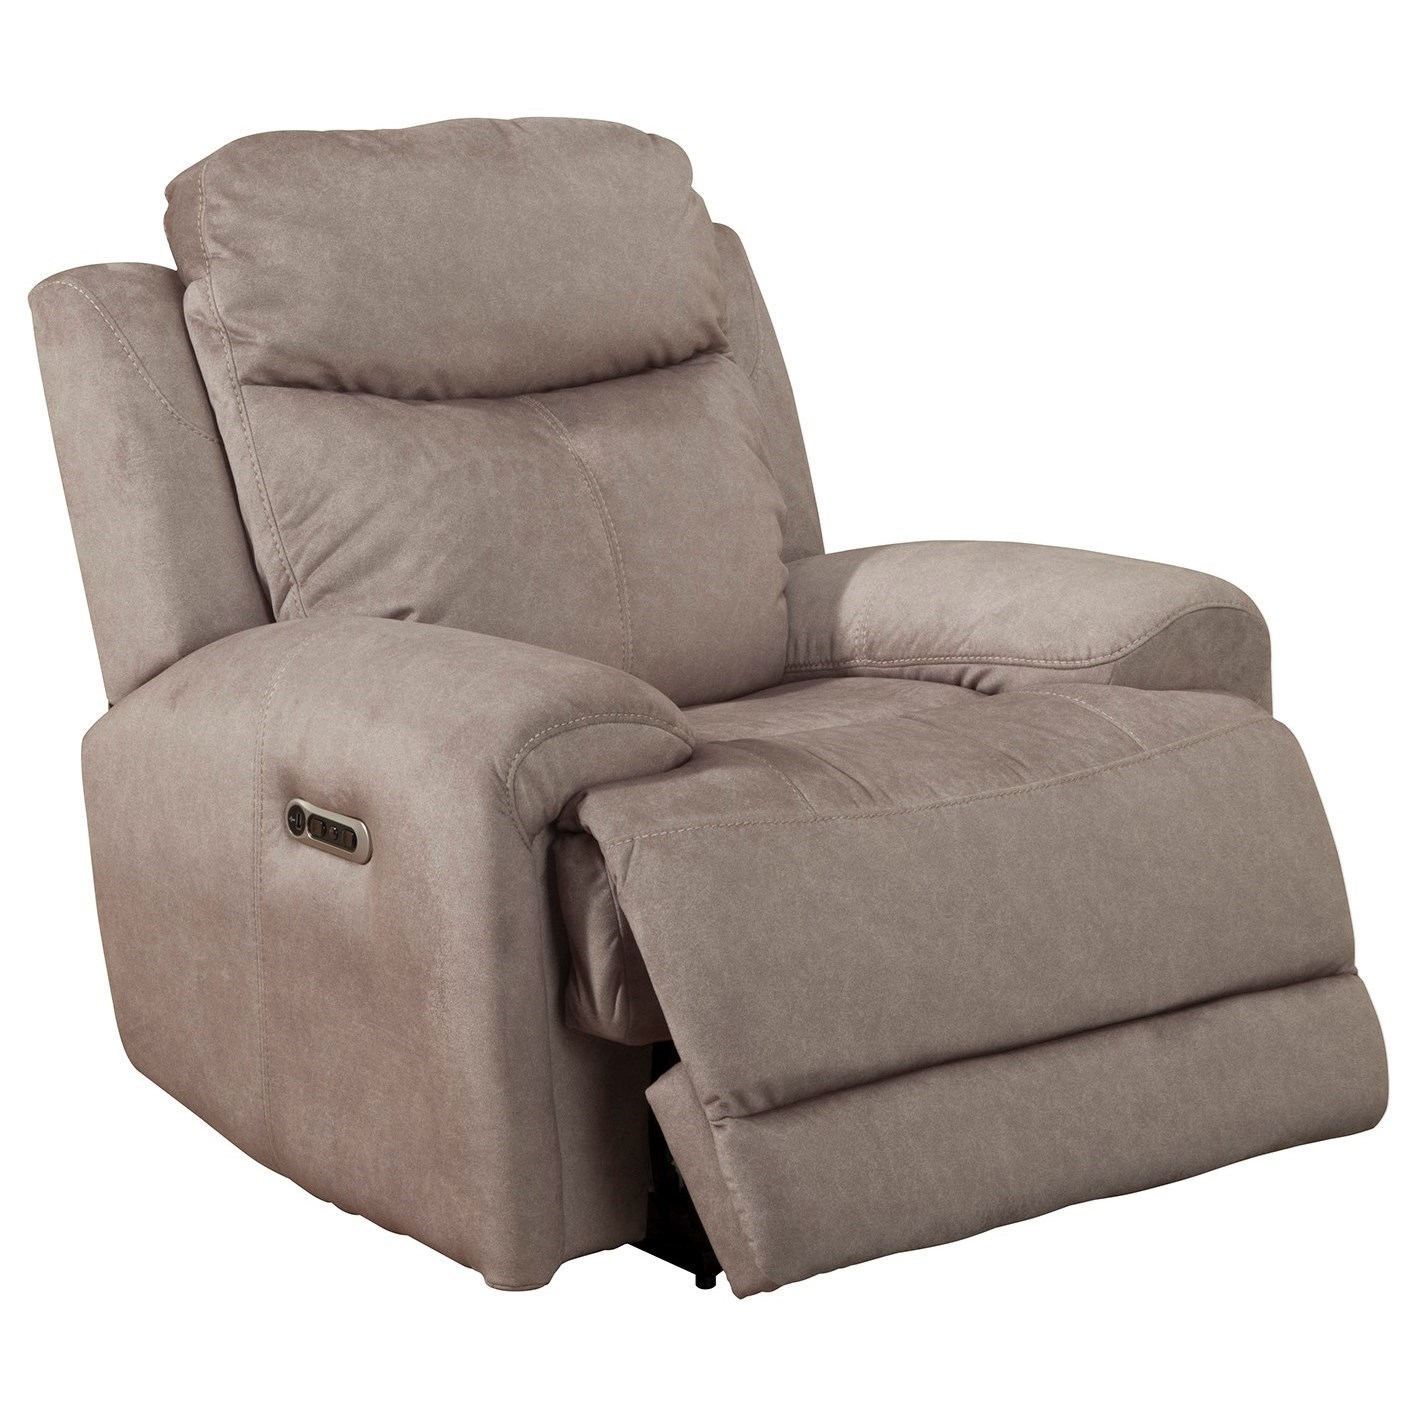 Bowie RECLINER PWR W/ USB, PWR HDR & GEL FOAM by Parker Living at Zak's Home